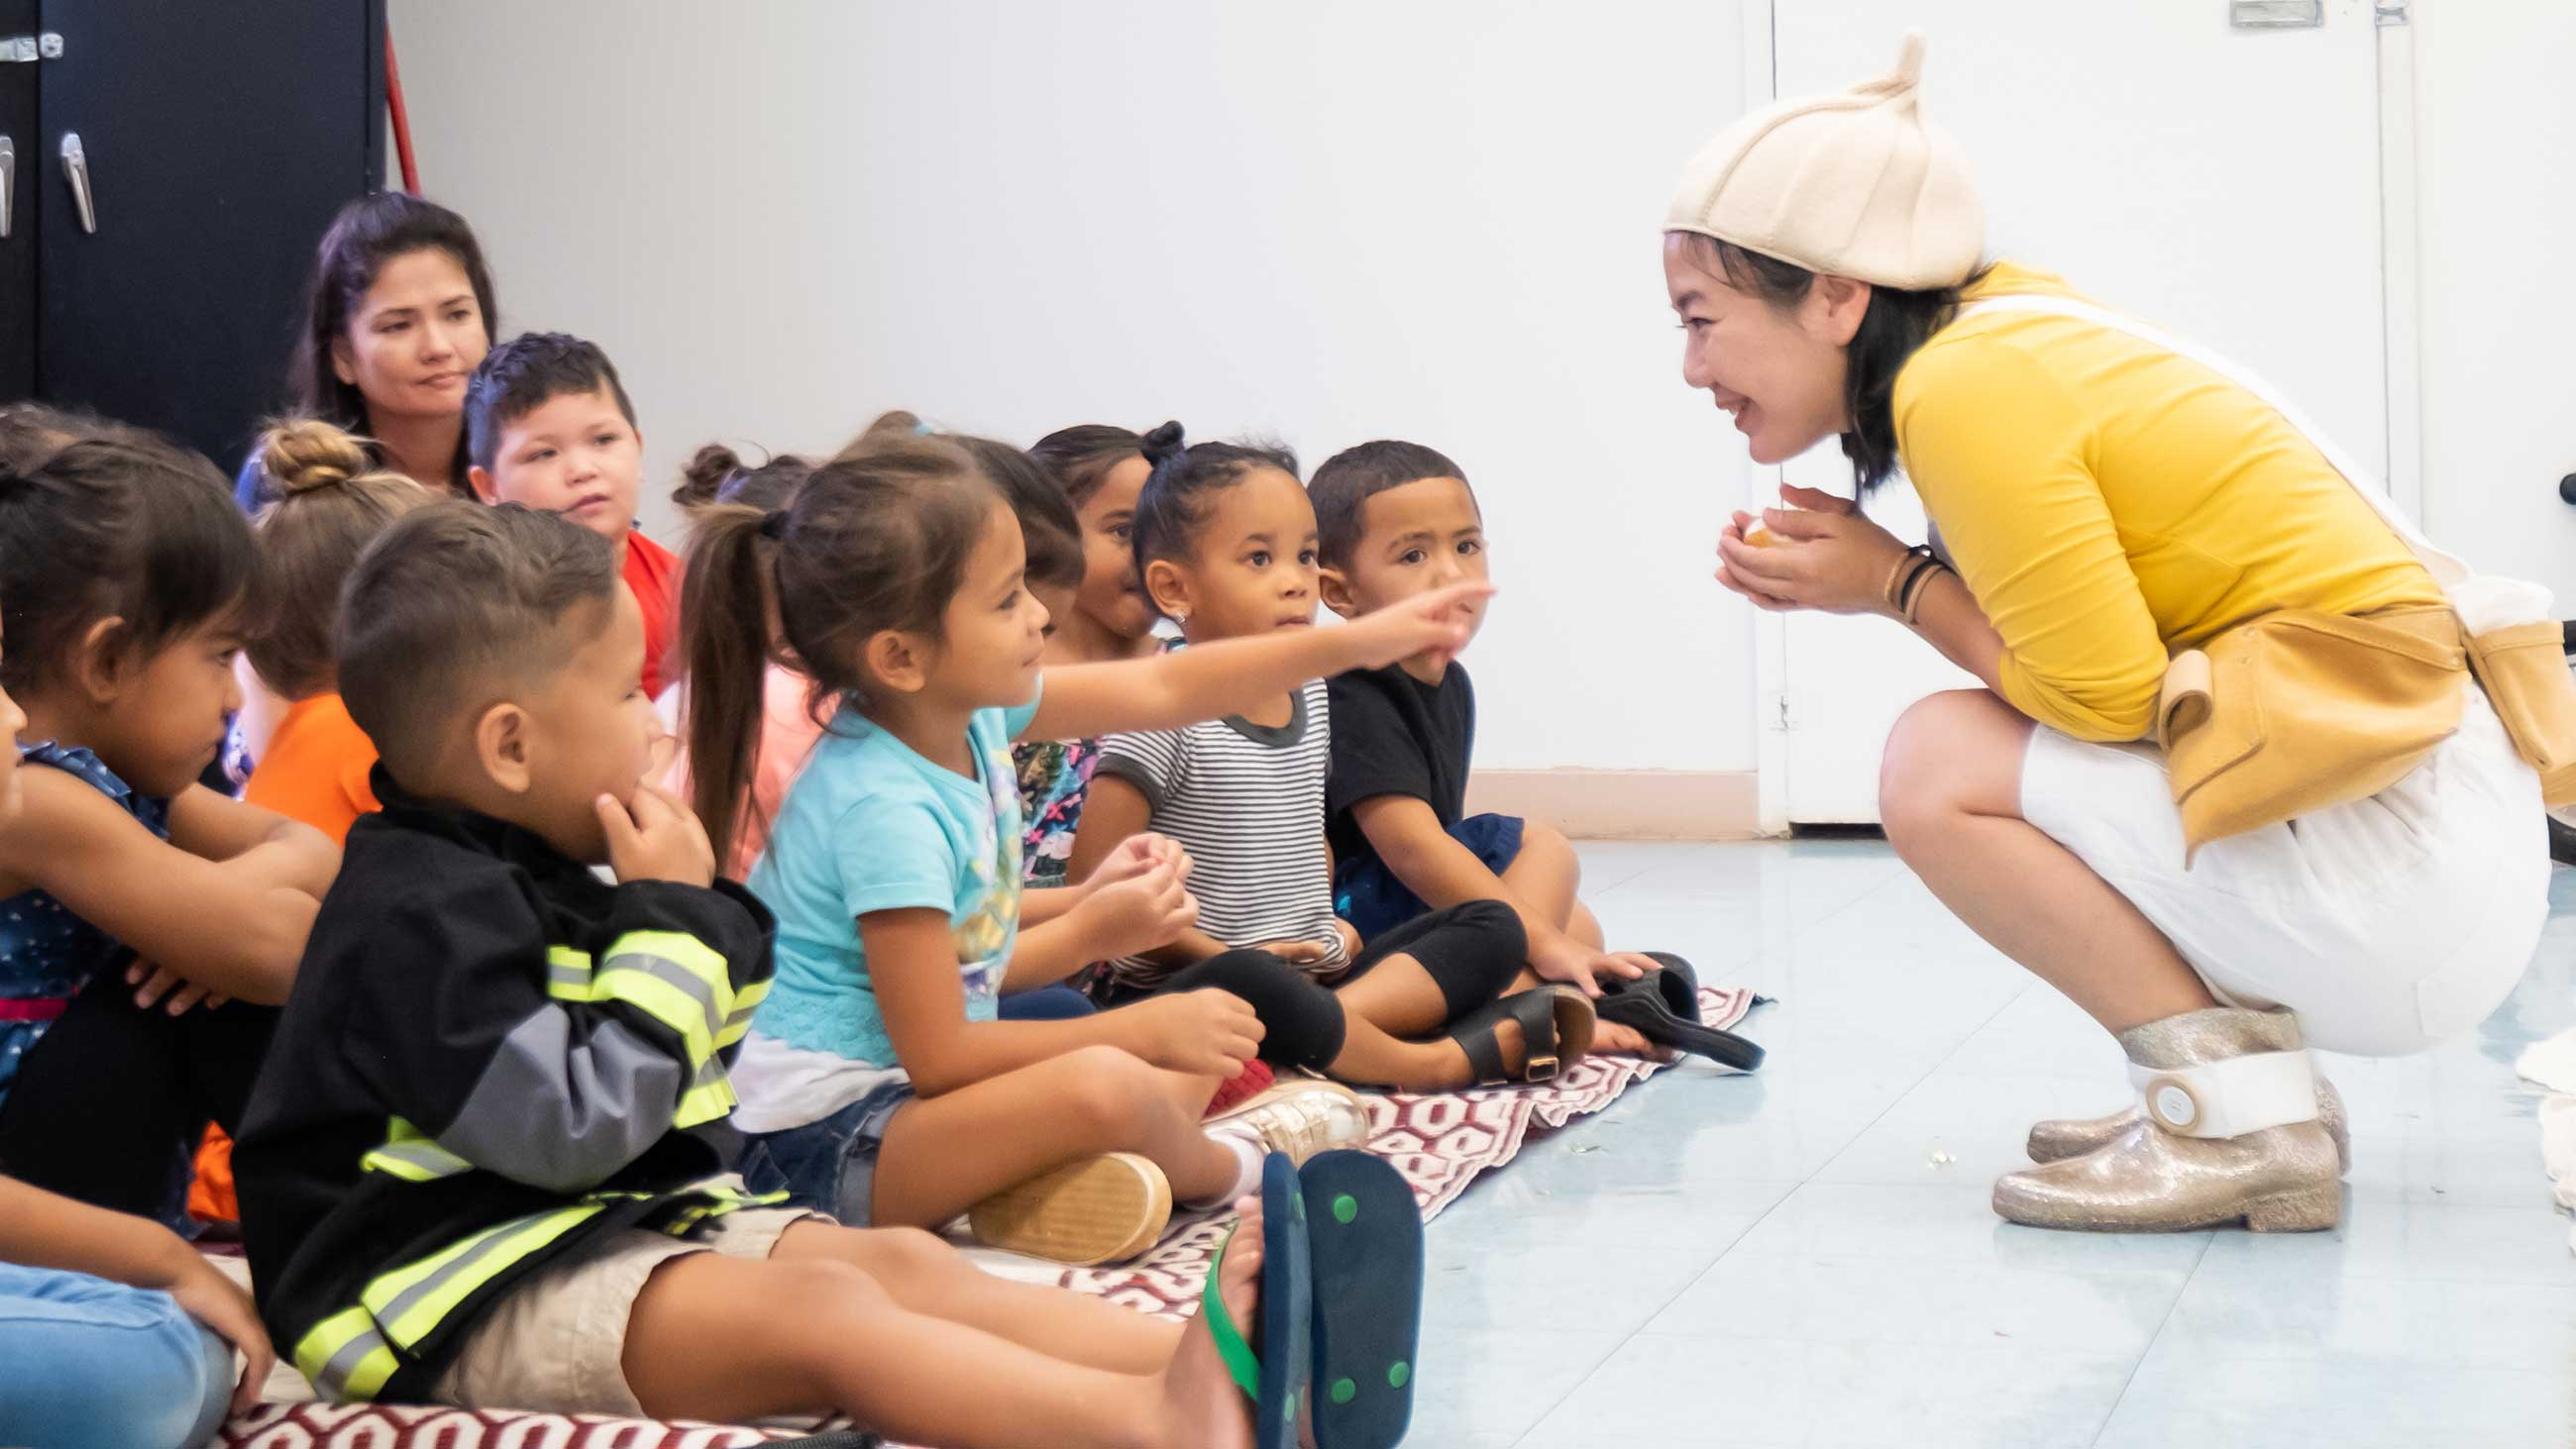 Honolulu Theatre for Youth performer with audience of children